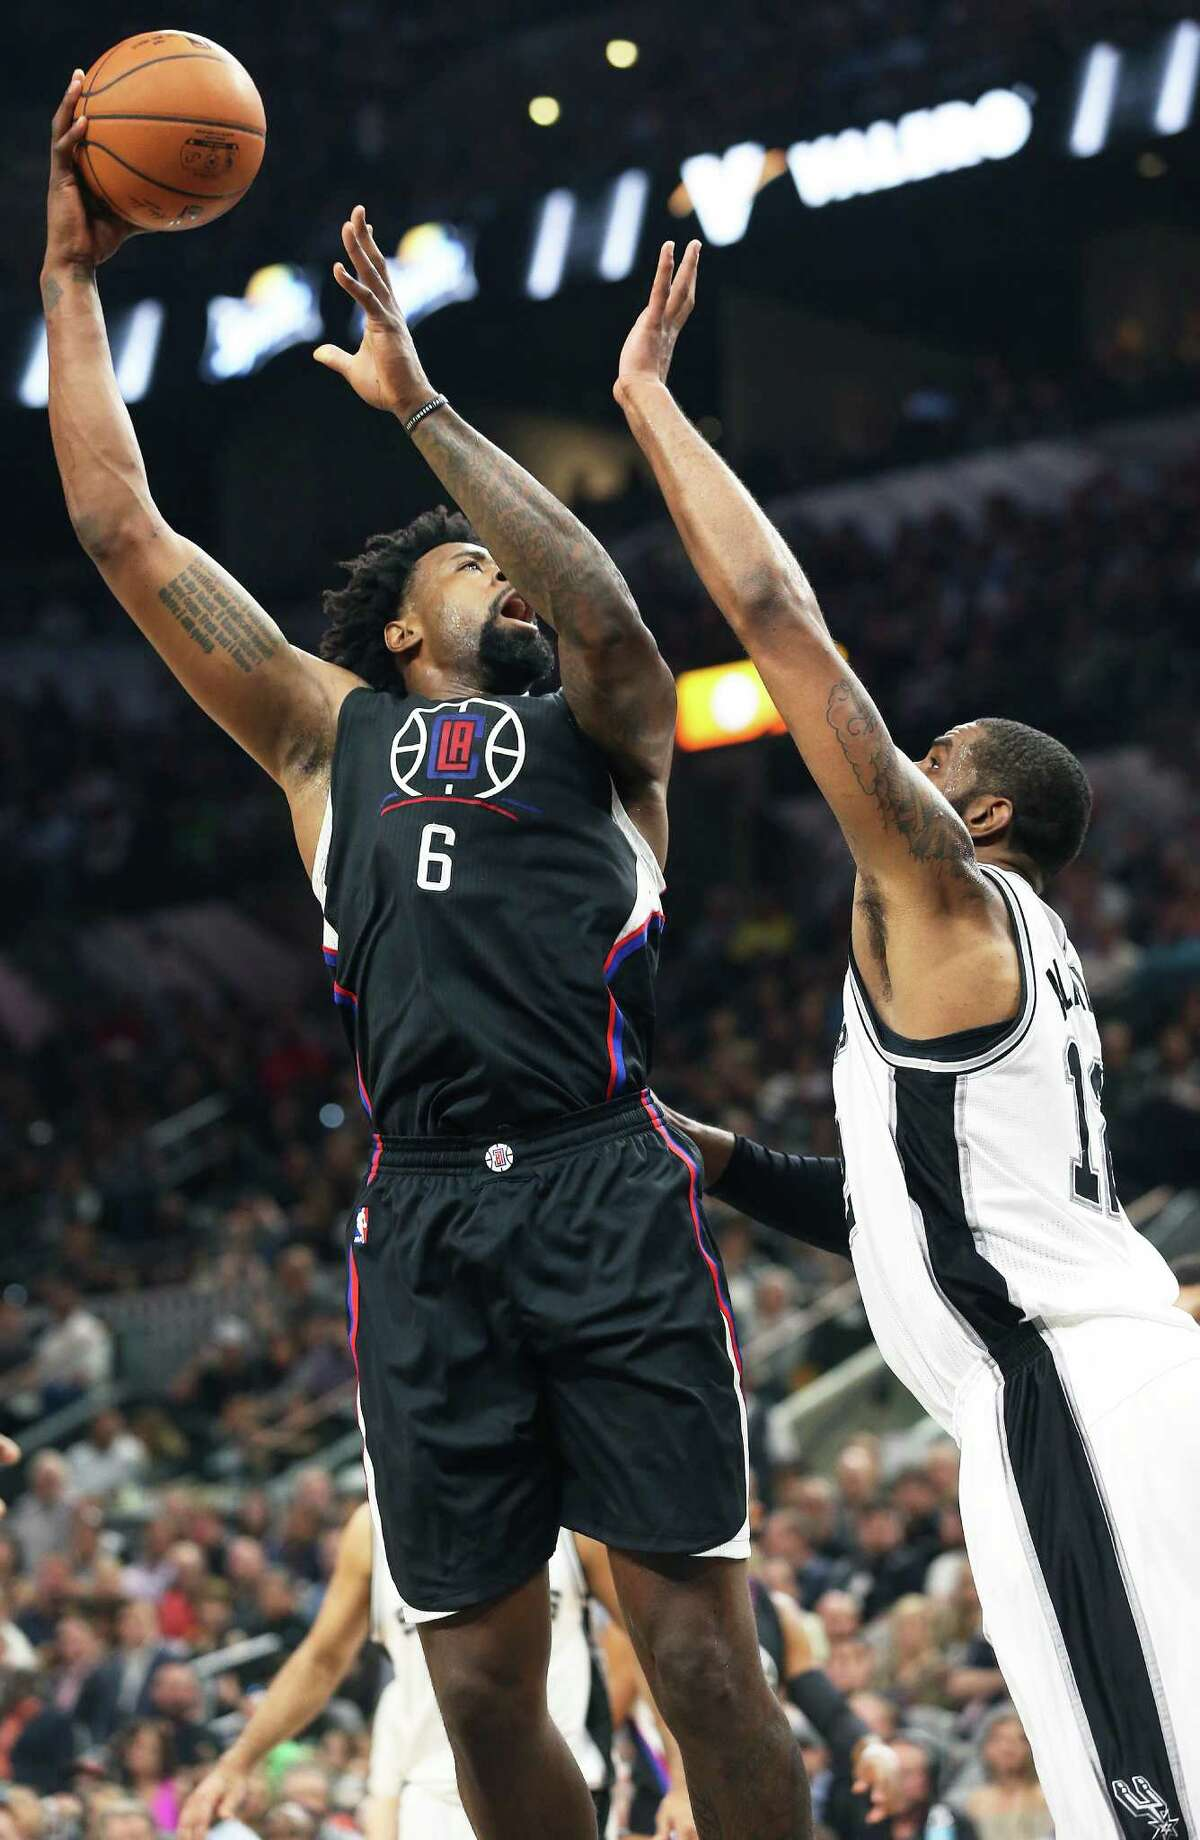 DeAndre Jordan takes a shot over LaMarcus Aldridge as the Spurs host the Clippers at the AT&T Center on March 15, 2016.